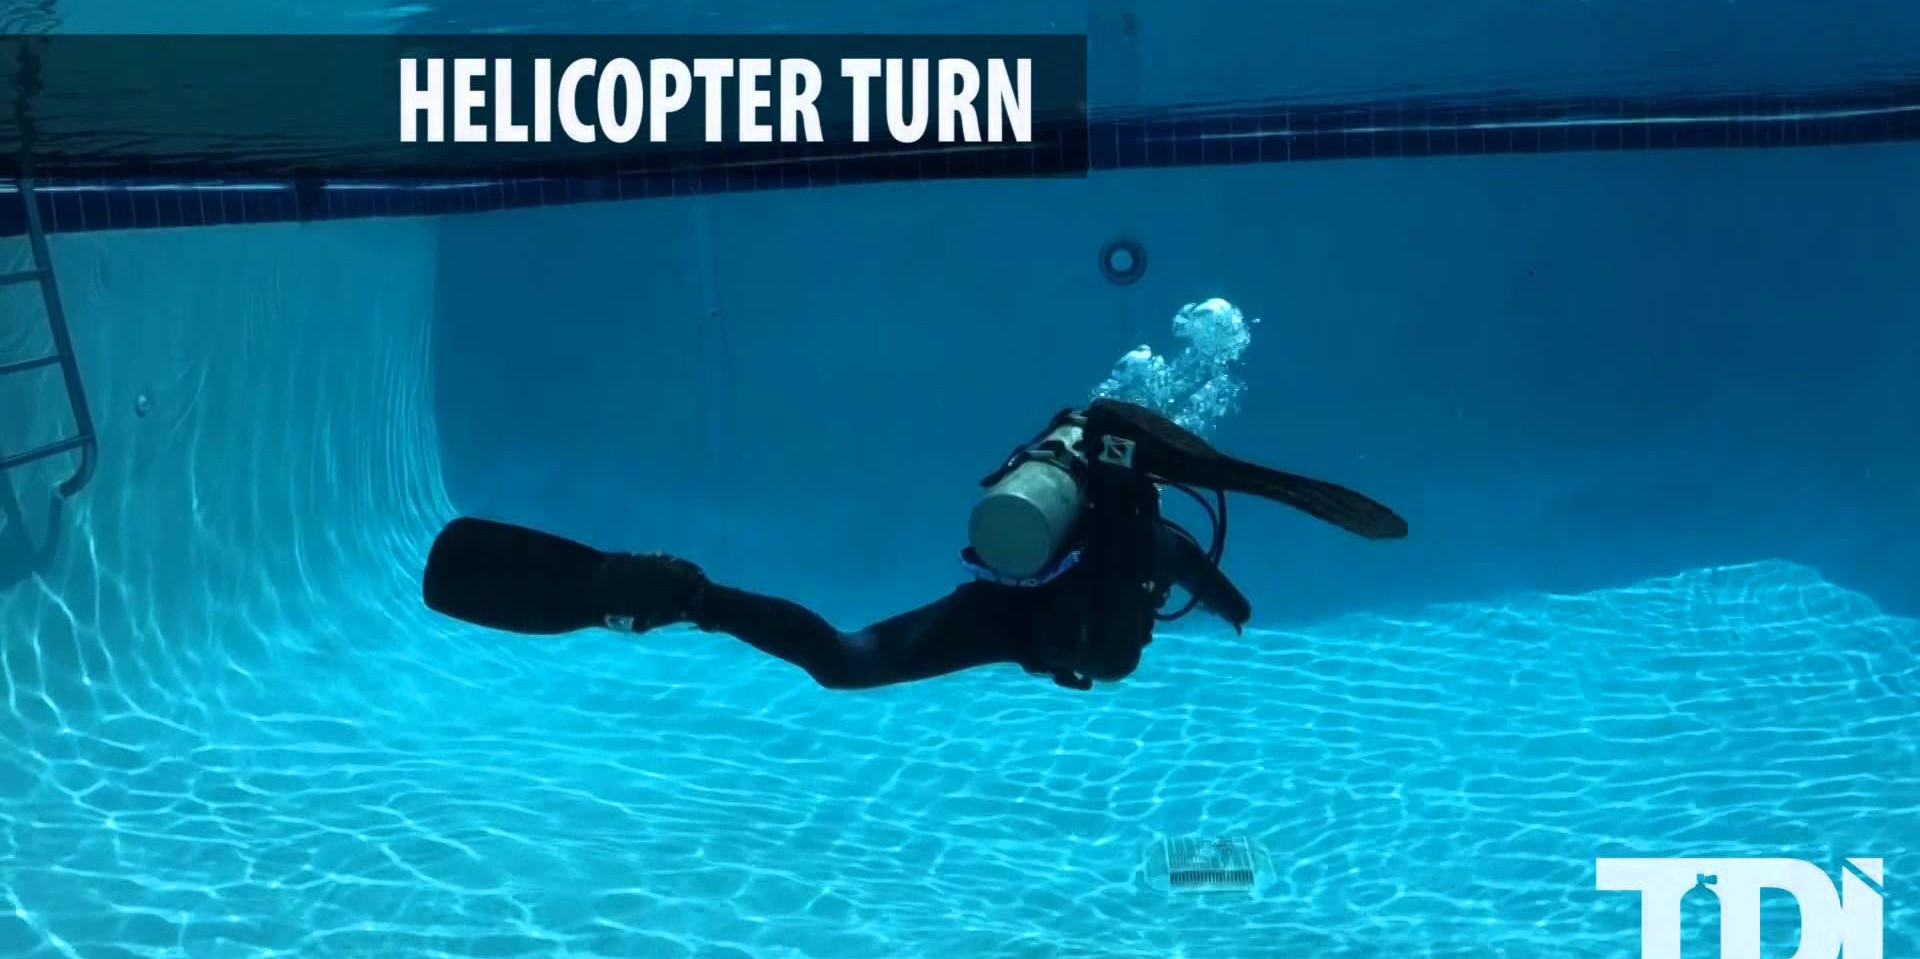 SDI/TDI Scuba Diving Finning Techniques - Helicopter Turn